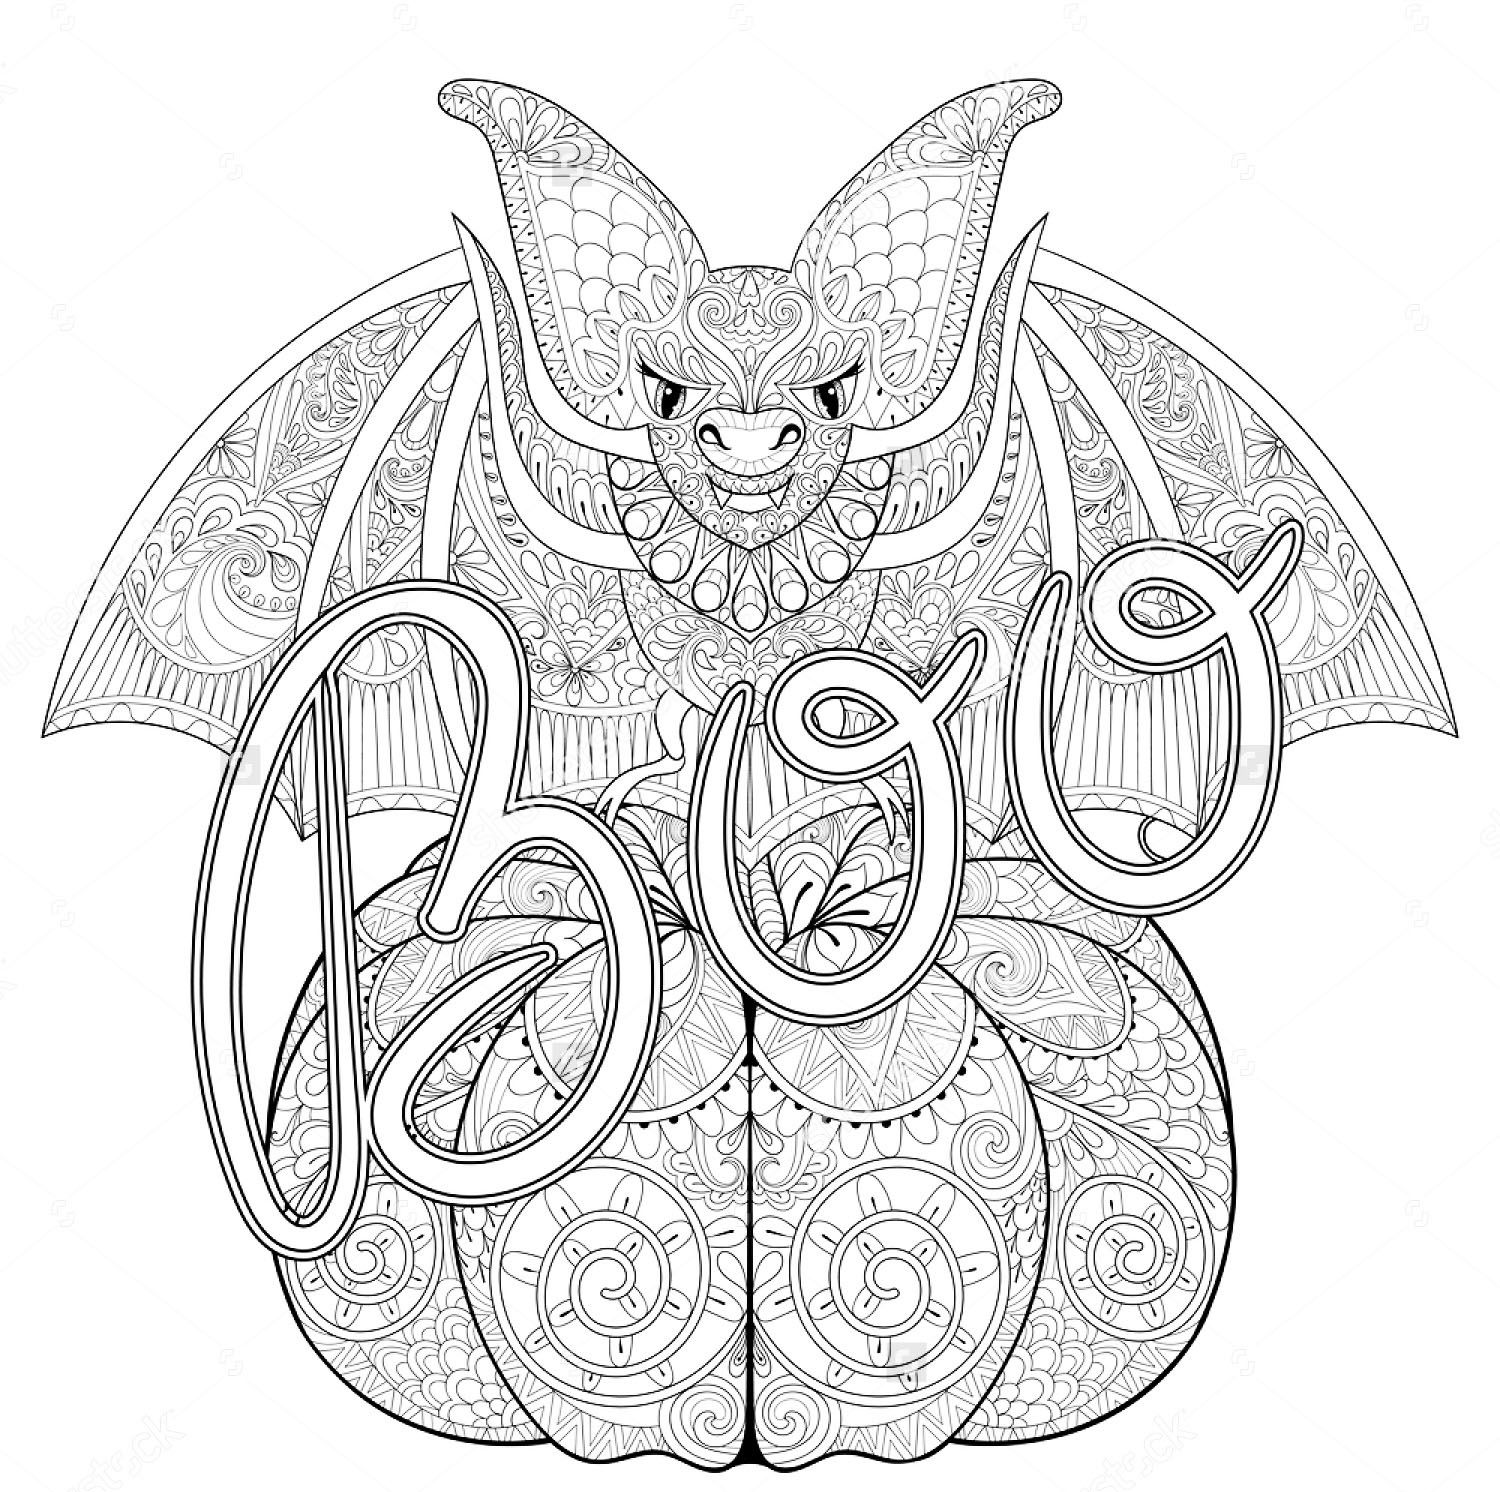 Colouring in for adults why - 30 Halloween Coloring Page Printables To Keep Kids And Adults Busy